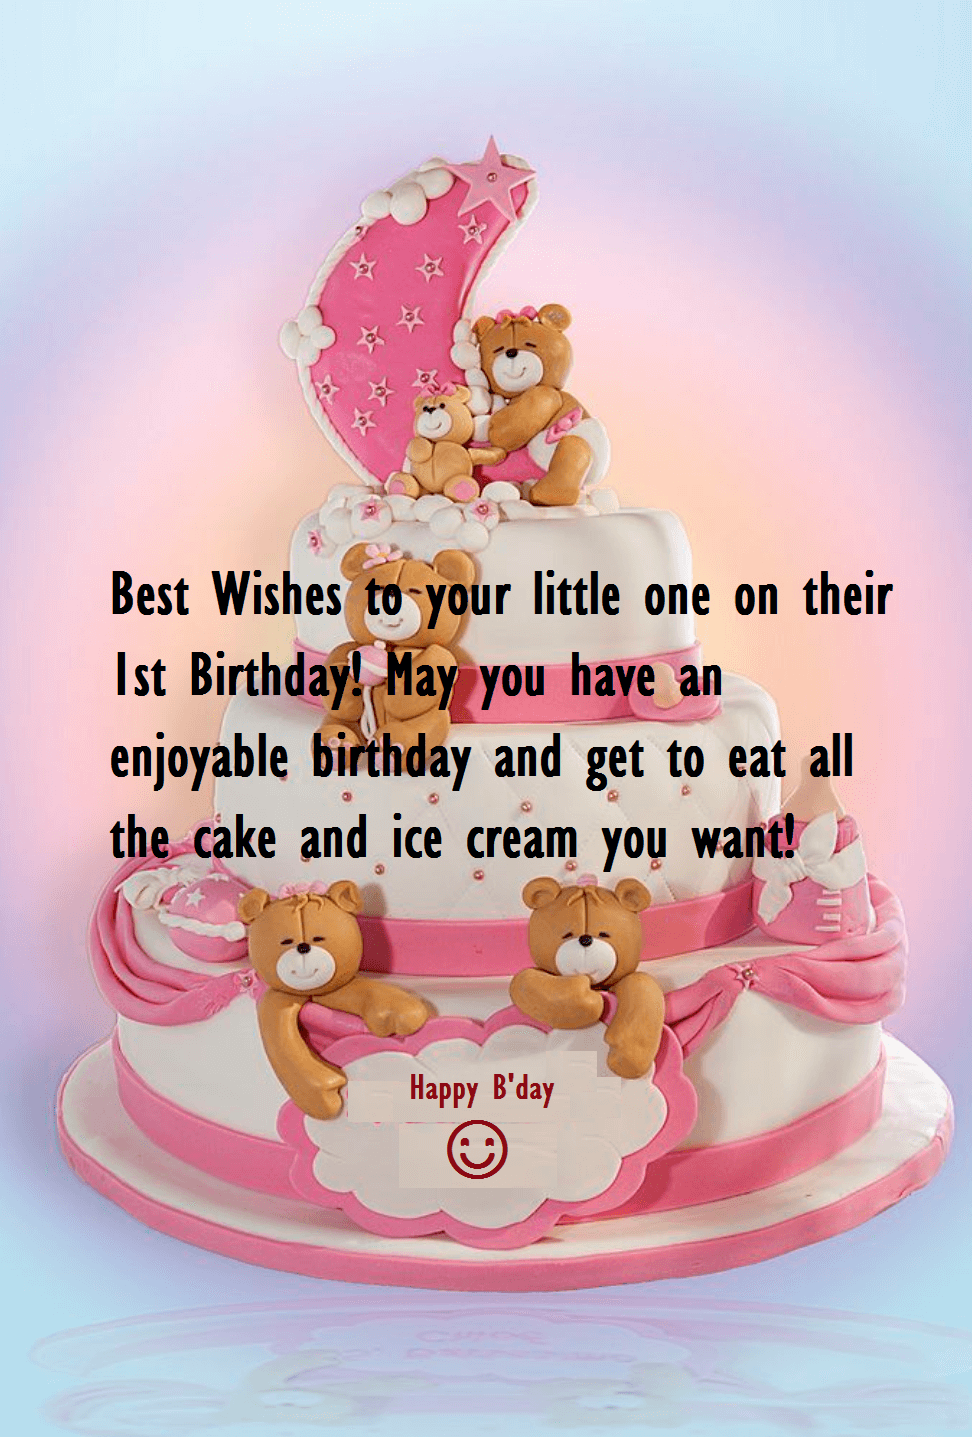 Birthday Cute Cake Wishes For Baby One Year Birthday Wishes